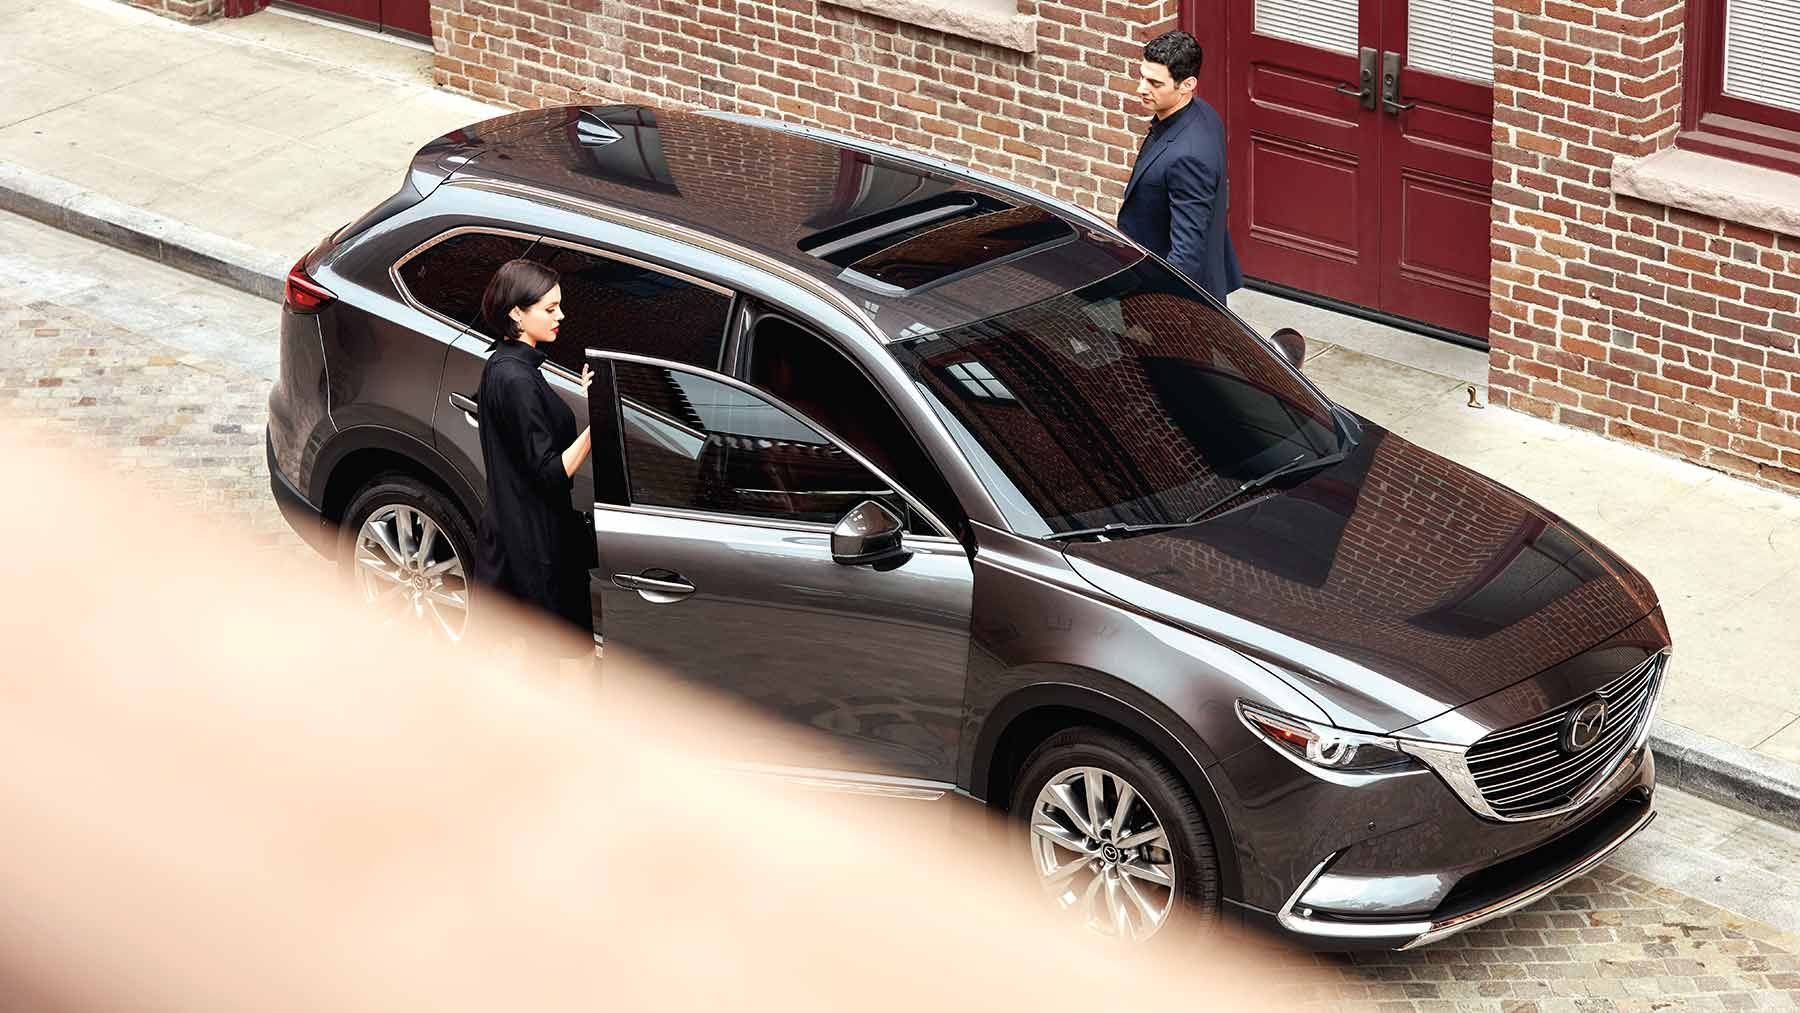 View photos and videos of the 2019 Mazda CX9 crossover